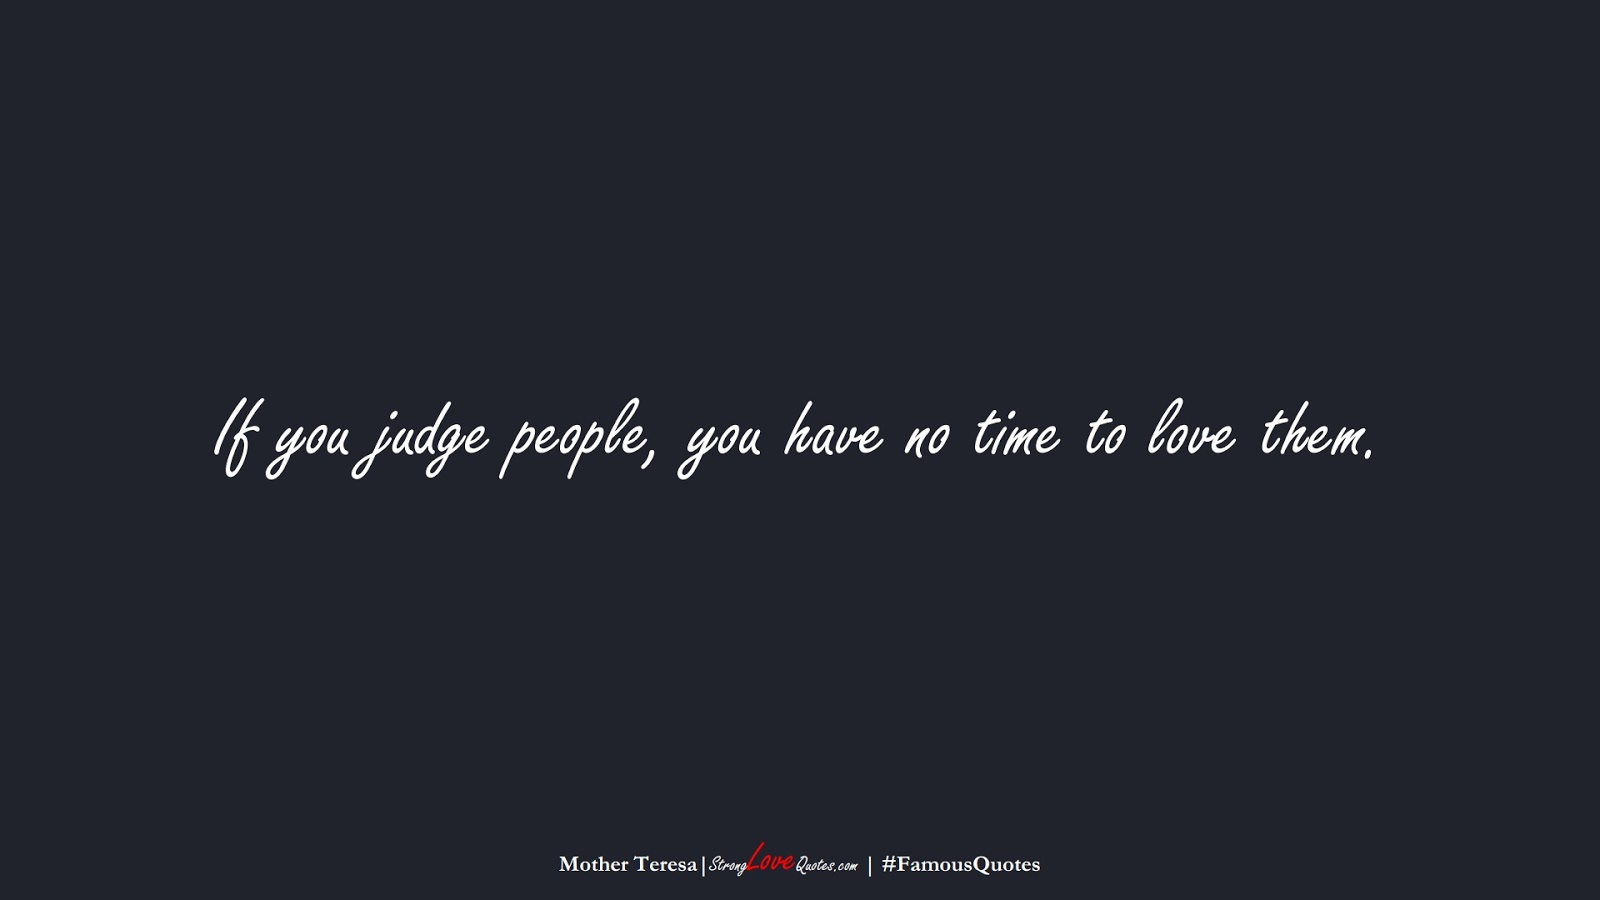 If you judge people, you have no time to love them. (Mother Teresa);  #FamousQuotes